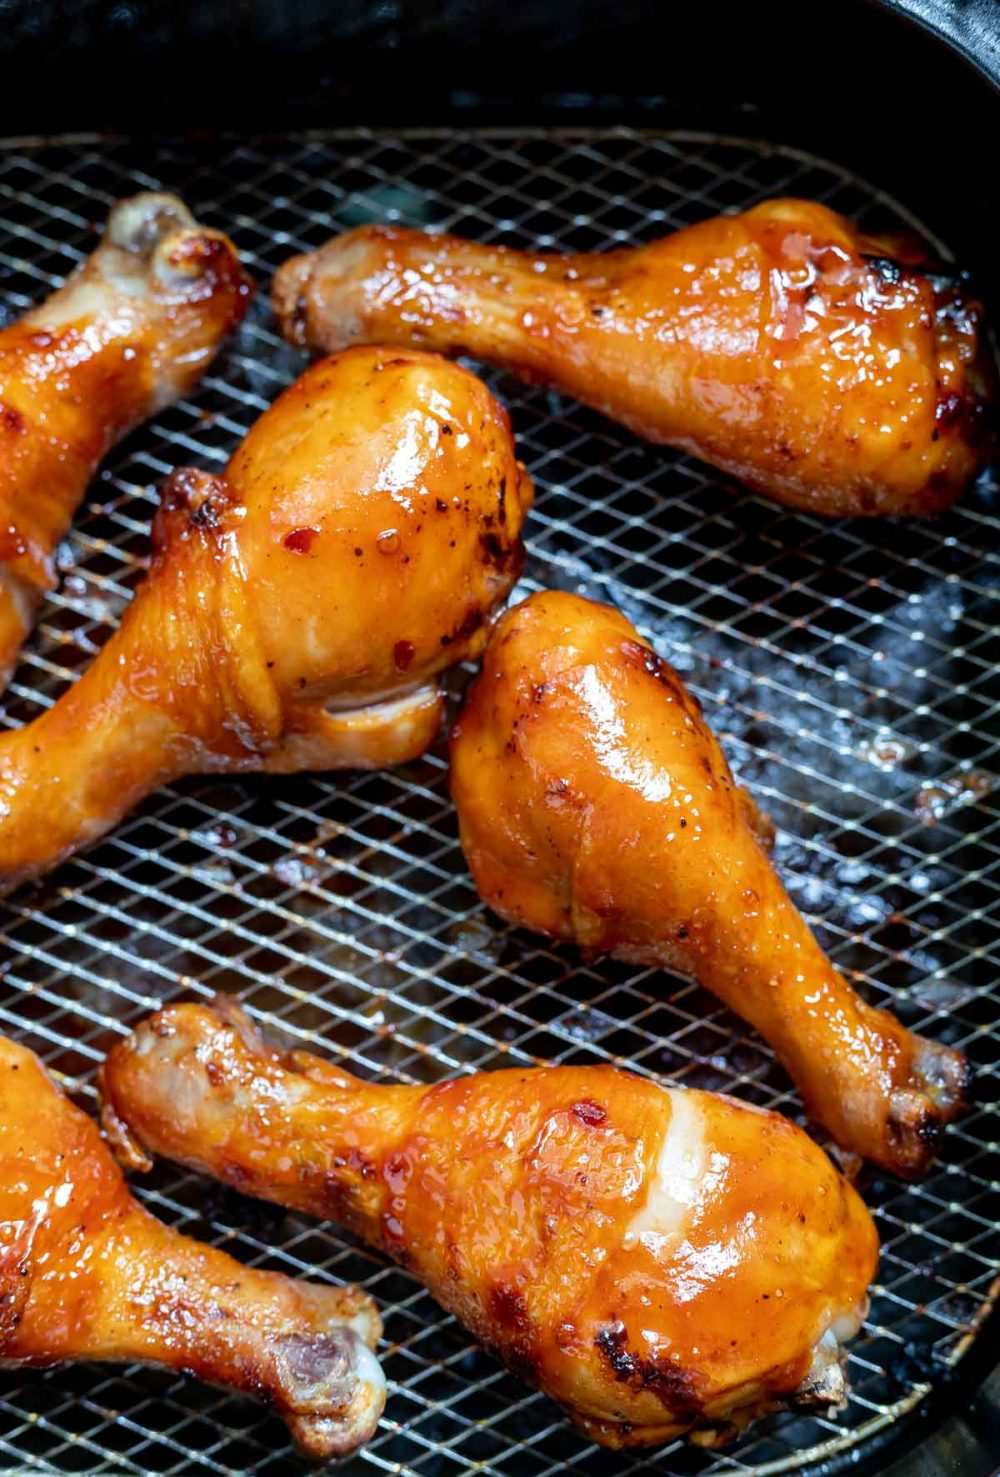 bbq glazed chicken legs in air fryer basket